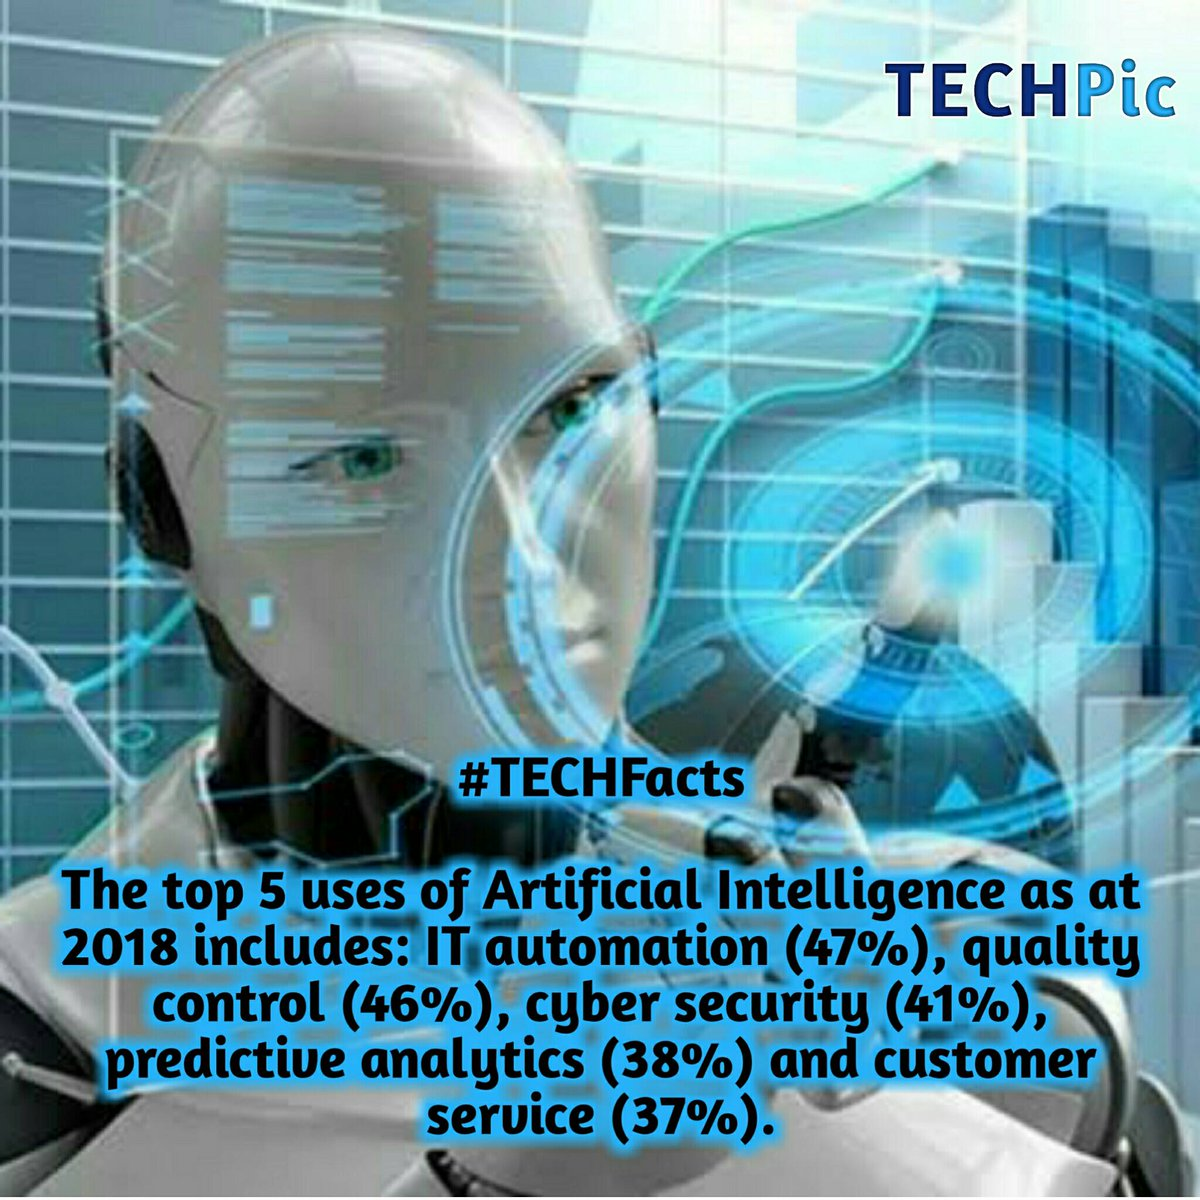 #TECHFacts  The top 5 uses of Artificial Intelligence as at 2018 includes: IT automation (47%), quality control (46%), cyber security (41%), predictive analytics (38%) and customer service (37%). pic.twitter.com/WjvtGct0ff